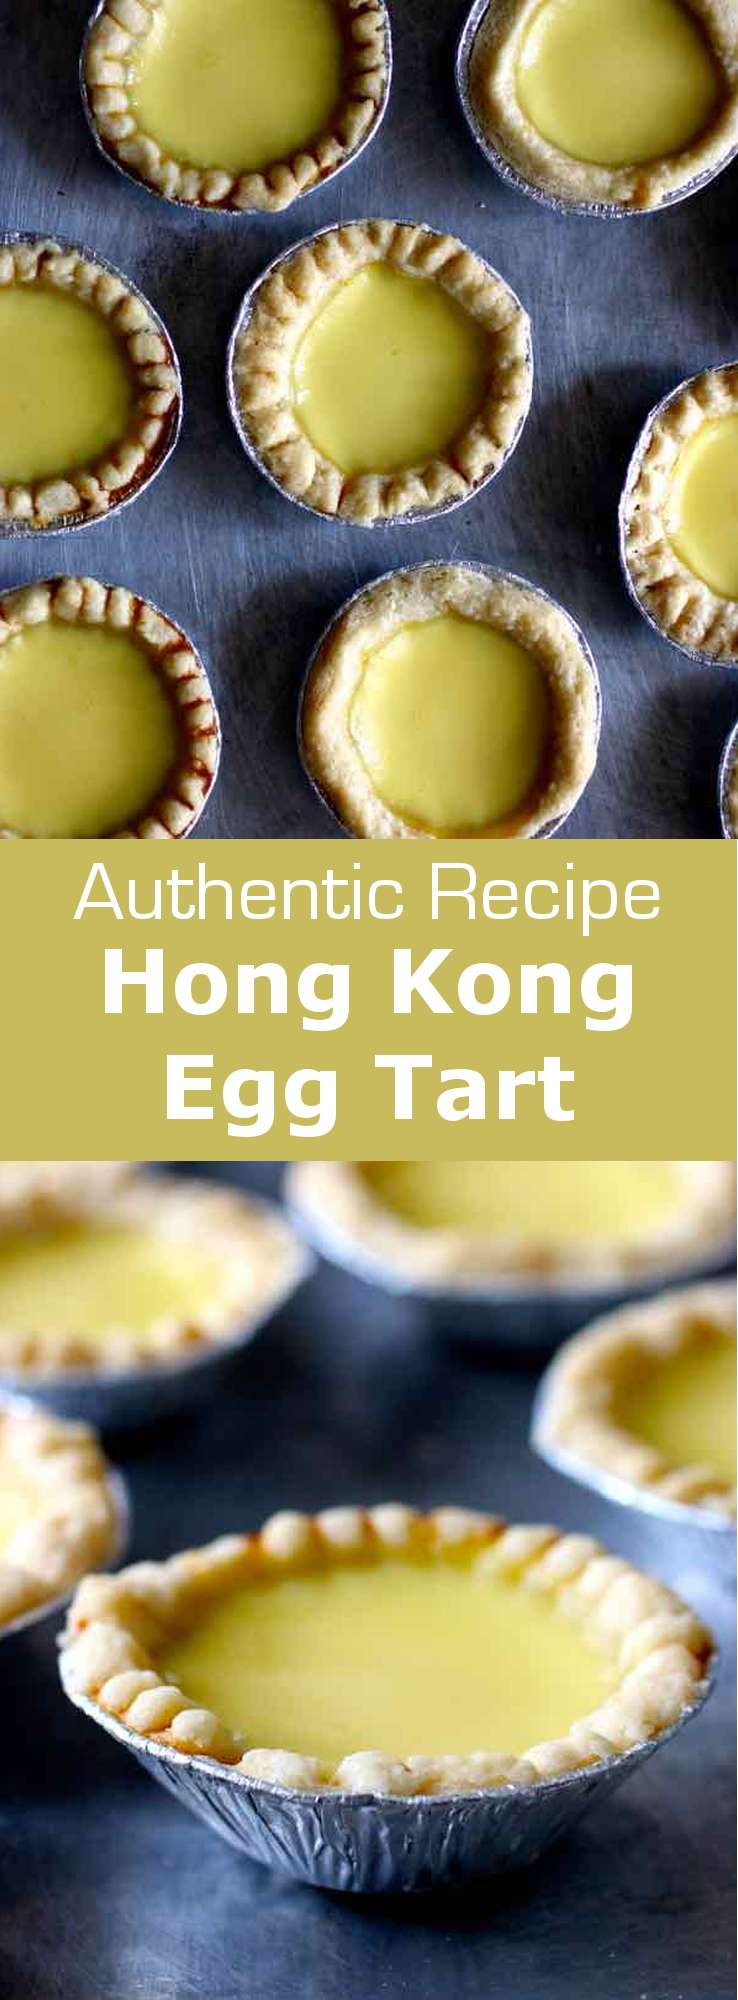 egg custard tart The traditional chinese egg custard tart is a rich egg custard in a shortbread crust or a flaky dough crust my version takes inspiration from the european crème caramel, which is an egg custard flan made with caramel.